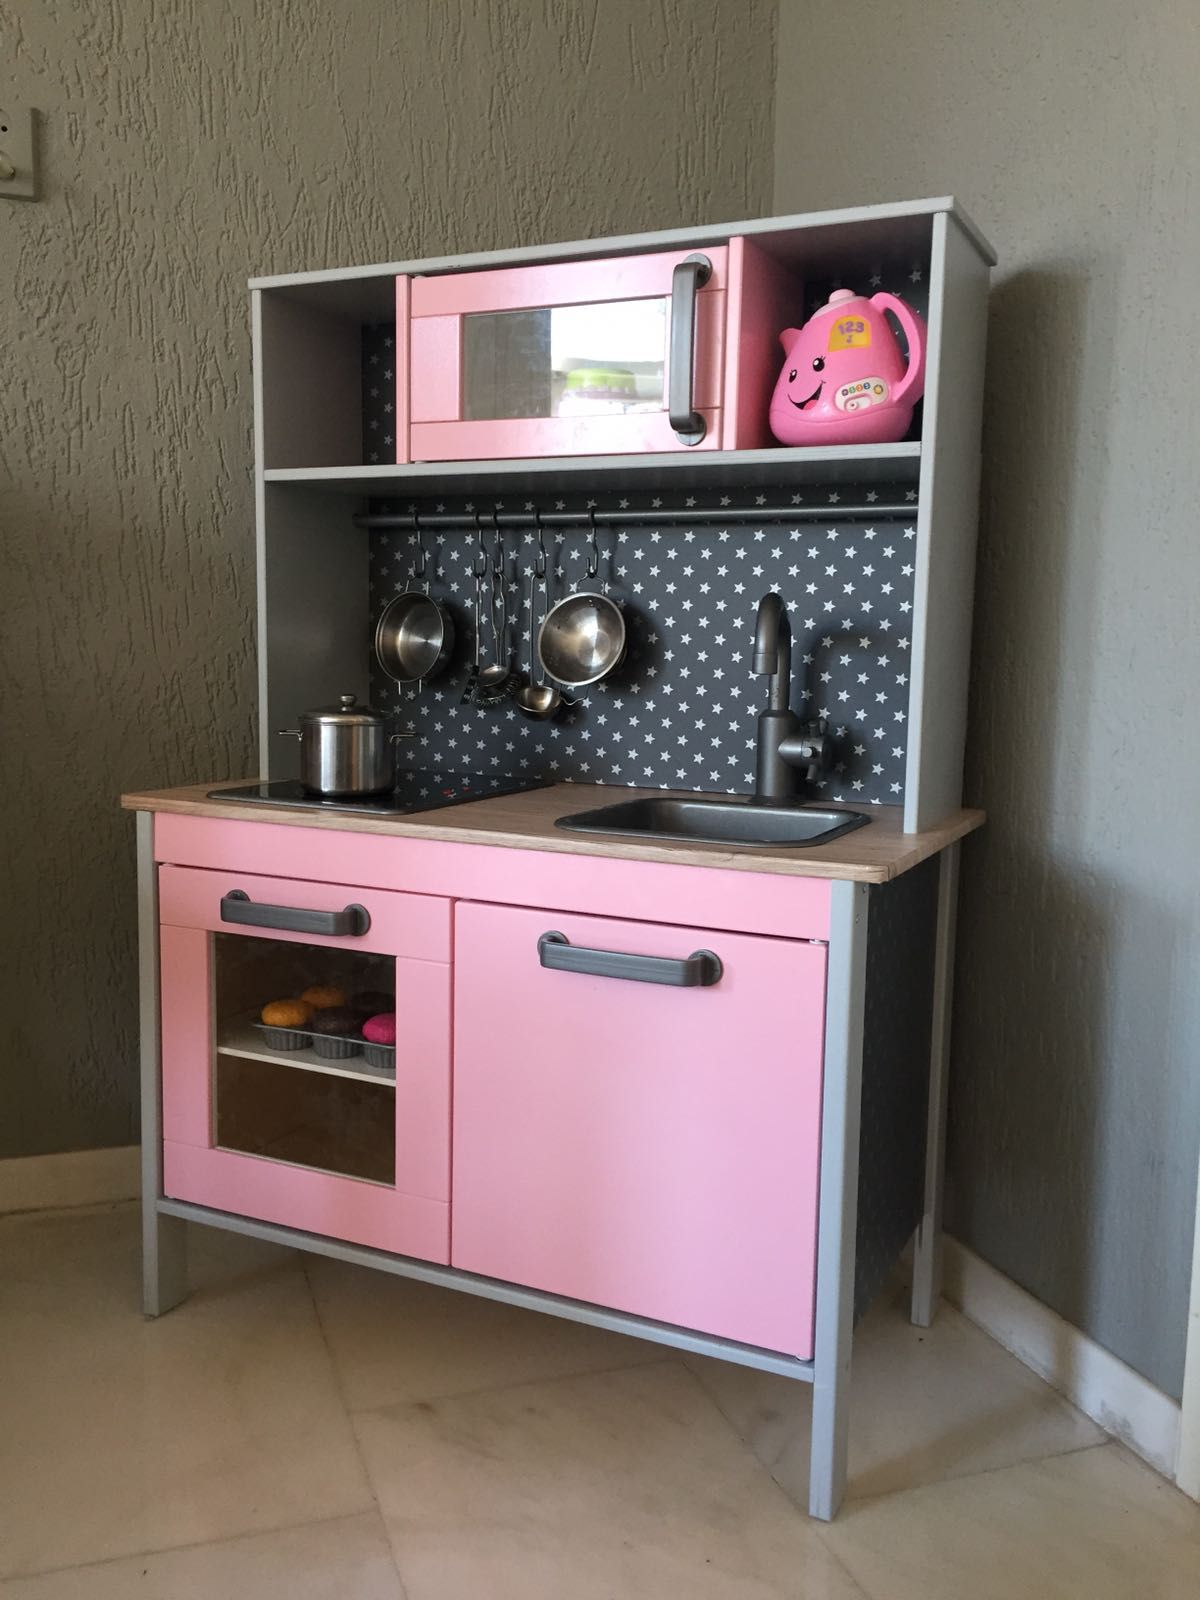 ikea duktig keukentje pimpenikea kids kitchen duktig makeover childrens kitchen inspired by blog. Black Bedroom Furniture Sets. Home Design Ideas